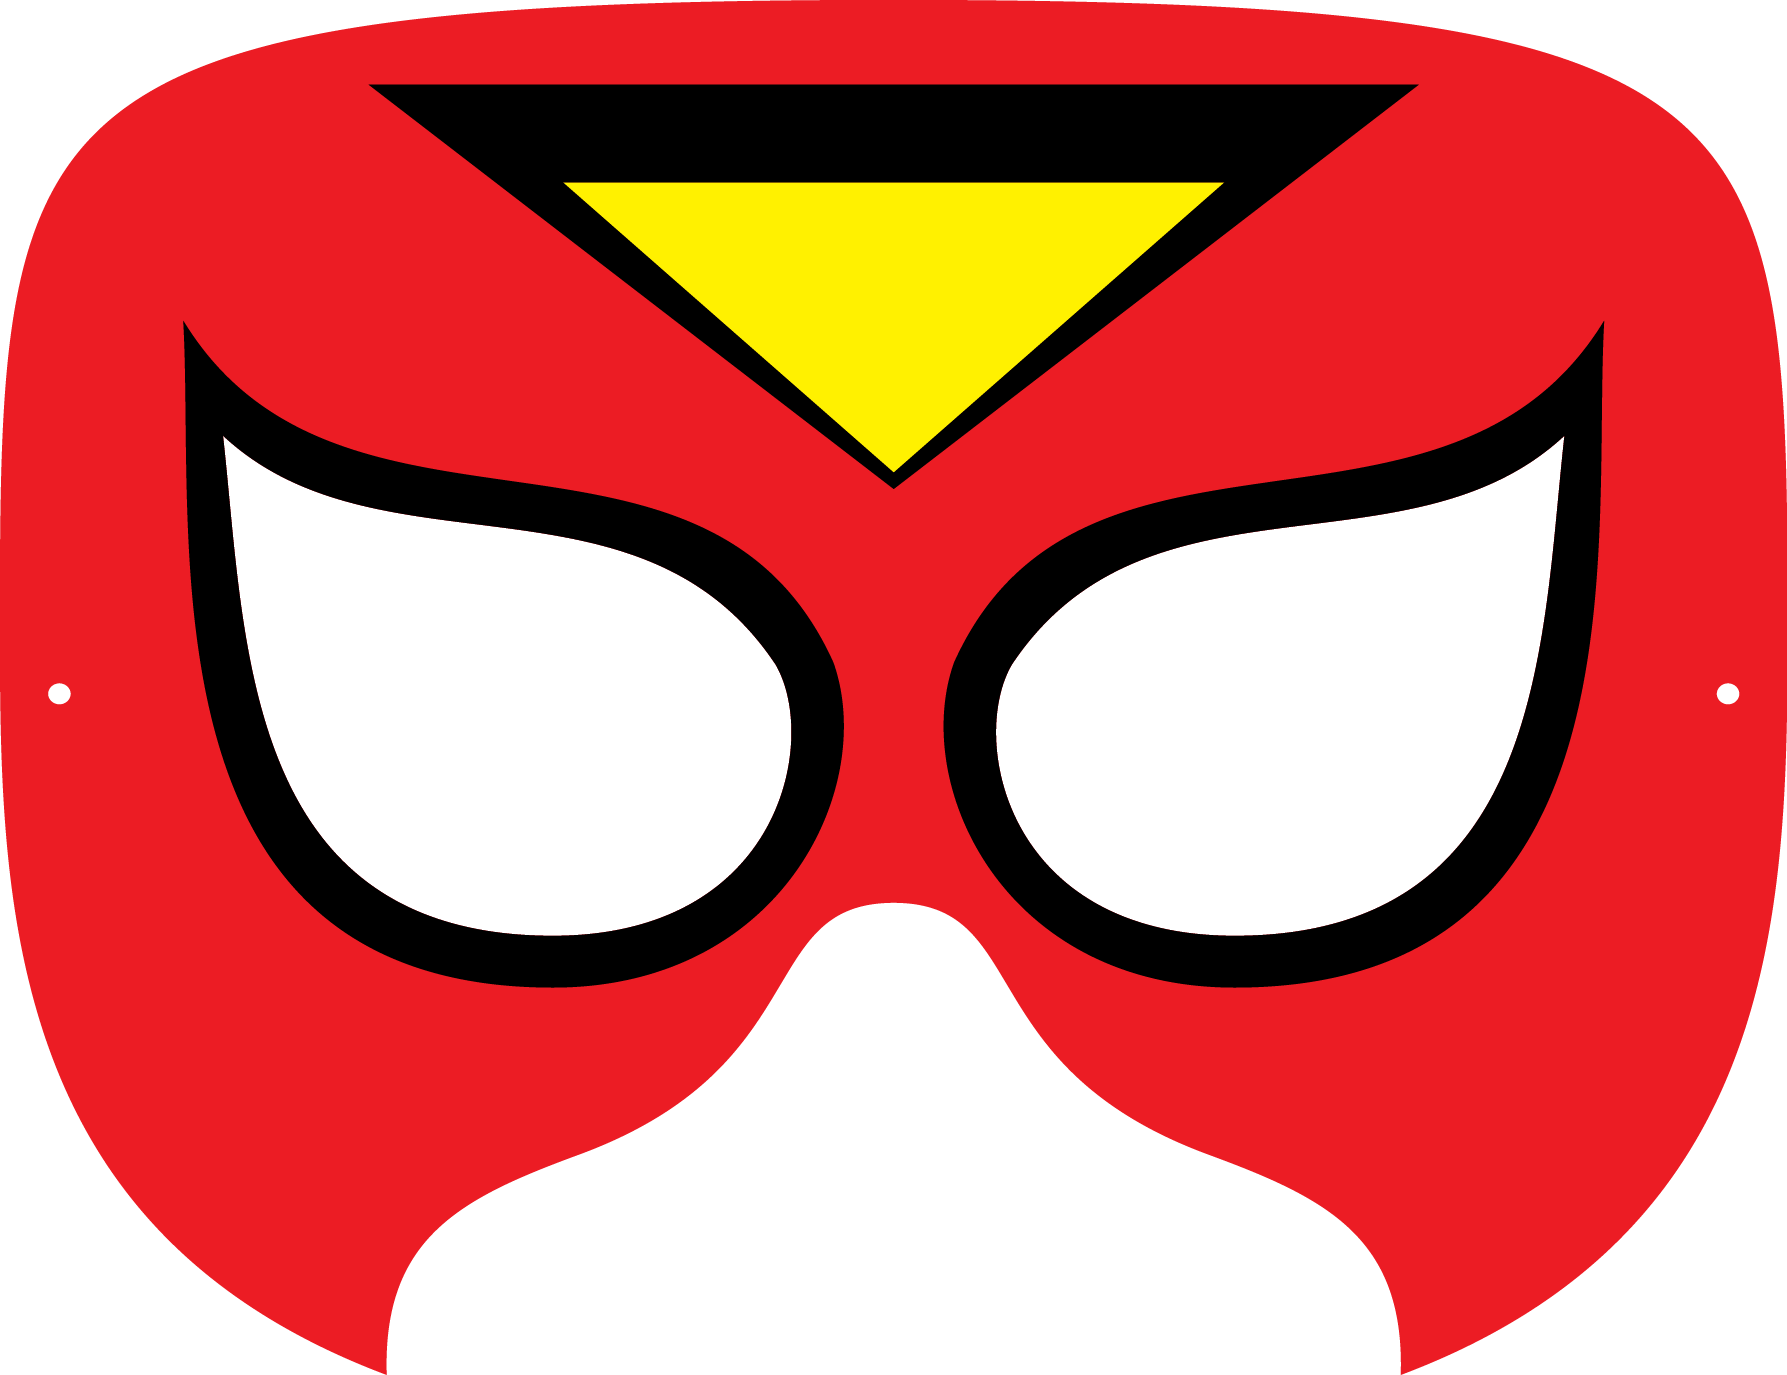 graphic regarding Printable Superhero Masks identify Superhero Mask Template Free of charge obtain most straightforward Superhero Mask